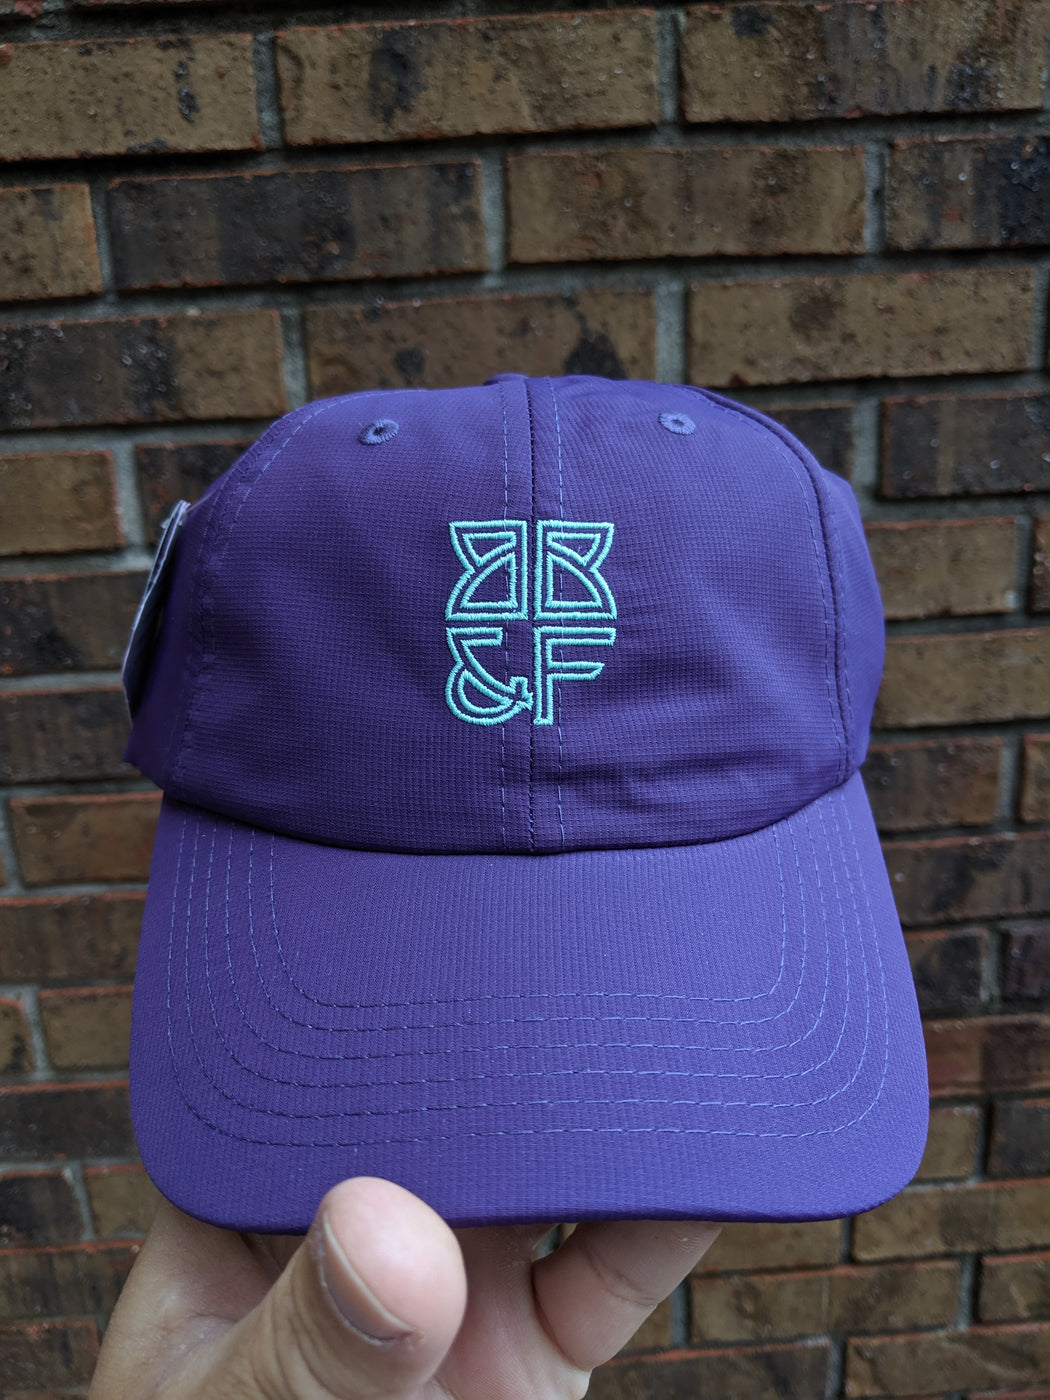 GDP (Purple hat with mint green logo)